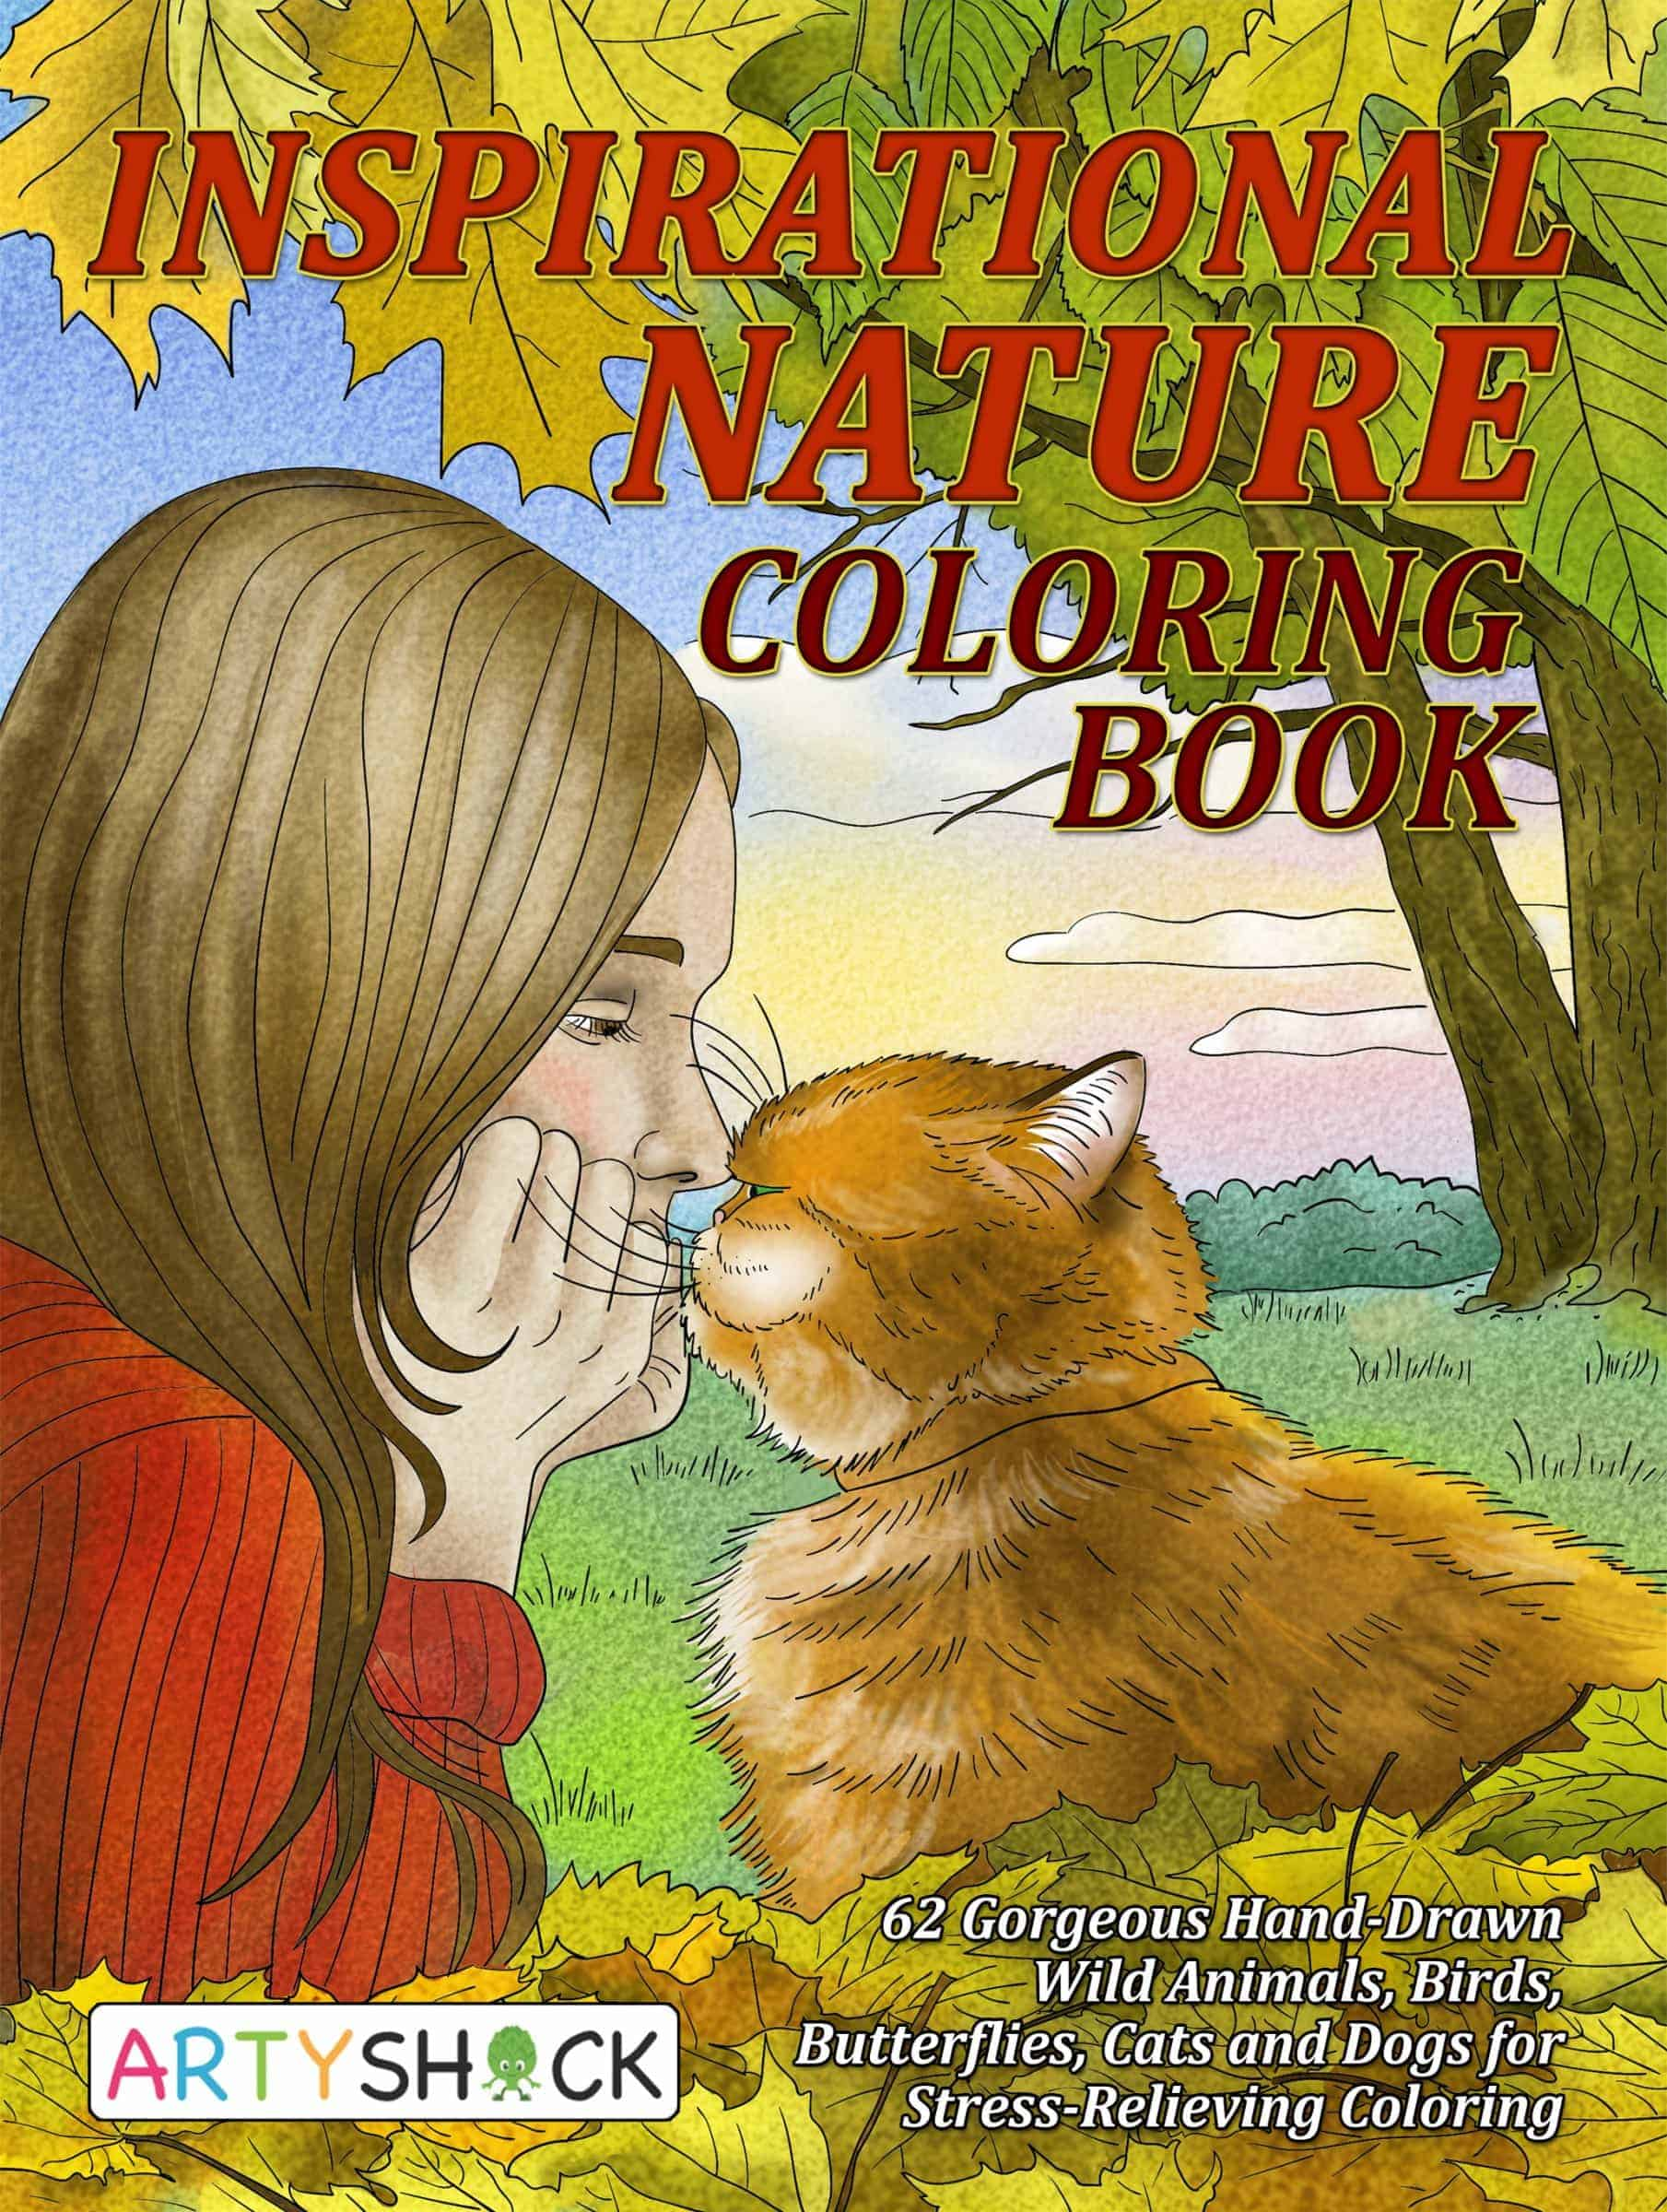 Inspirational Nature Coloring Book Gorgeous Hand Drawn Wild